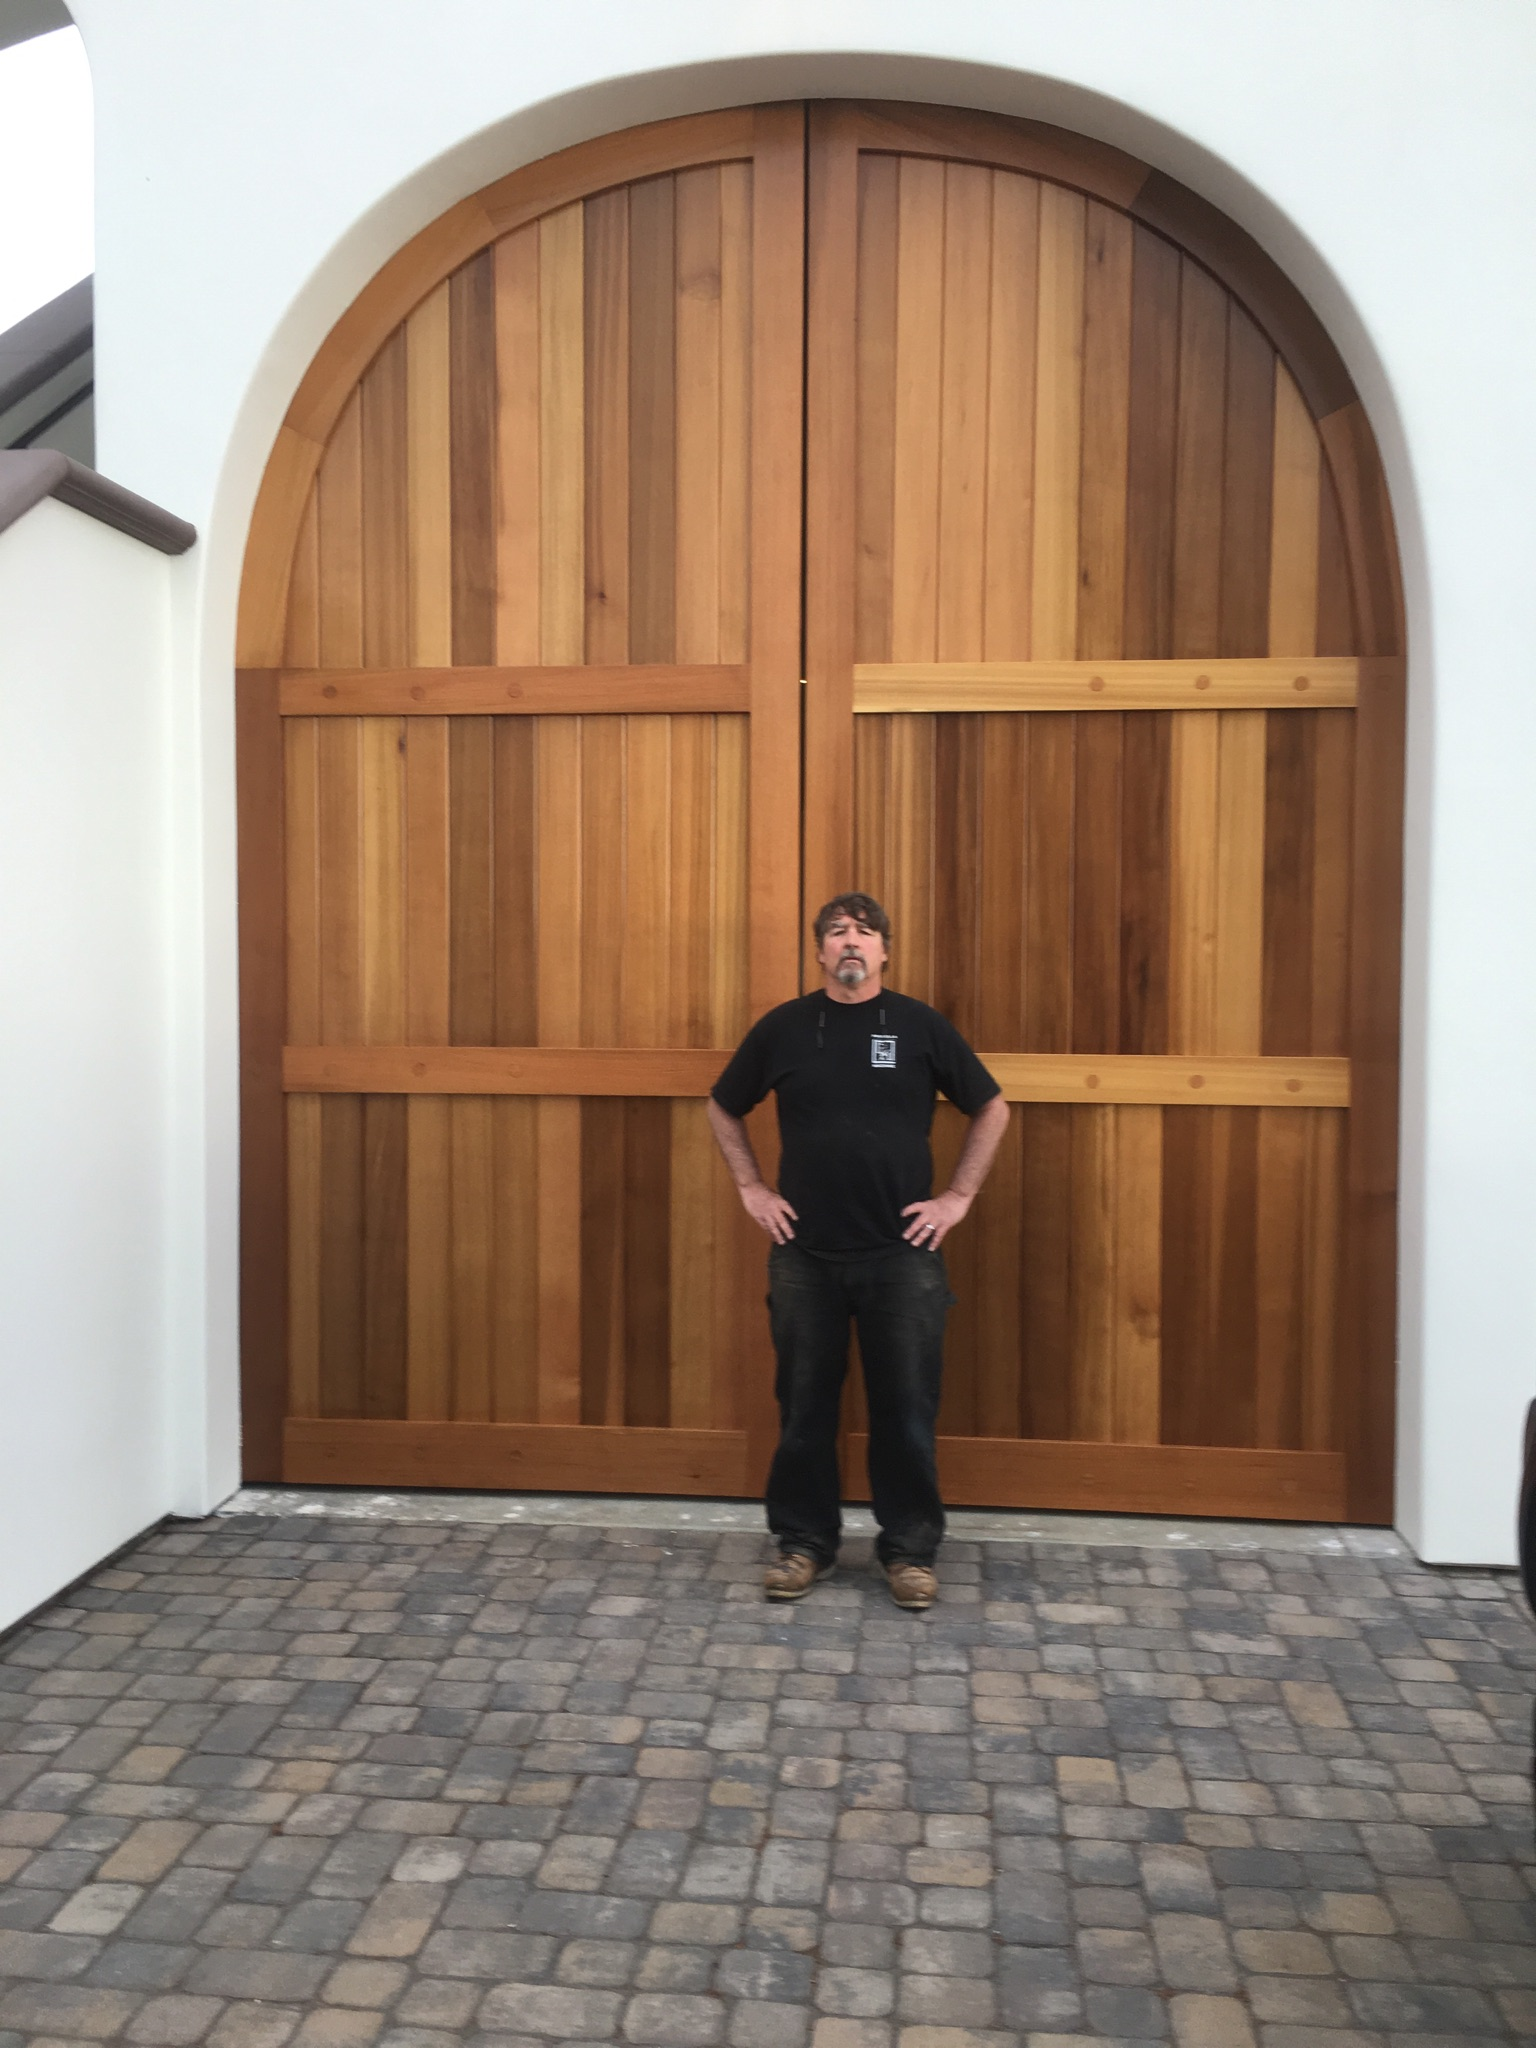 Here's the exterior of the Cedar doors with Shannon Williams standing in front of them to give a sense of just how large these doors are.